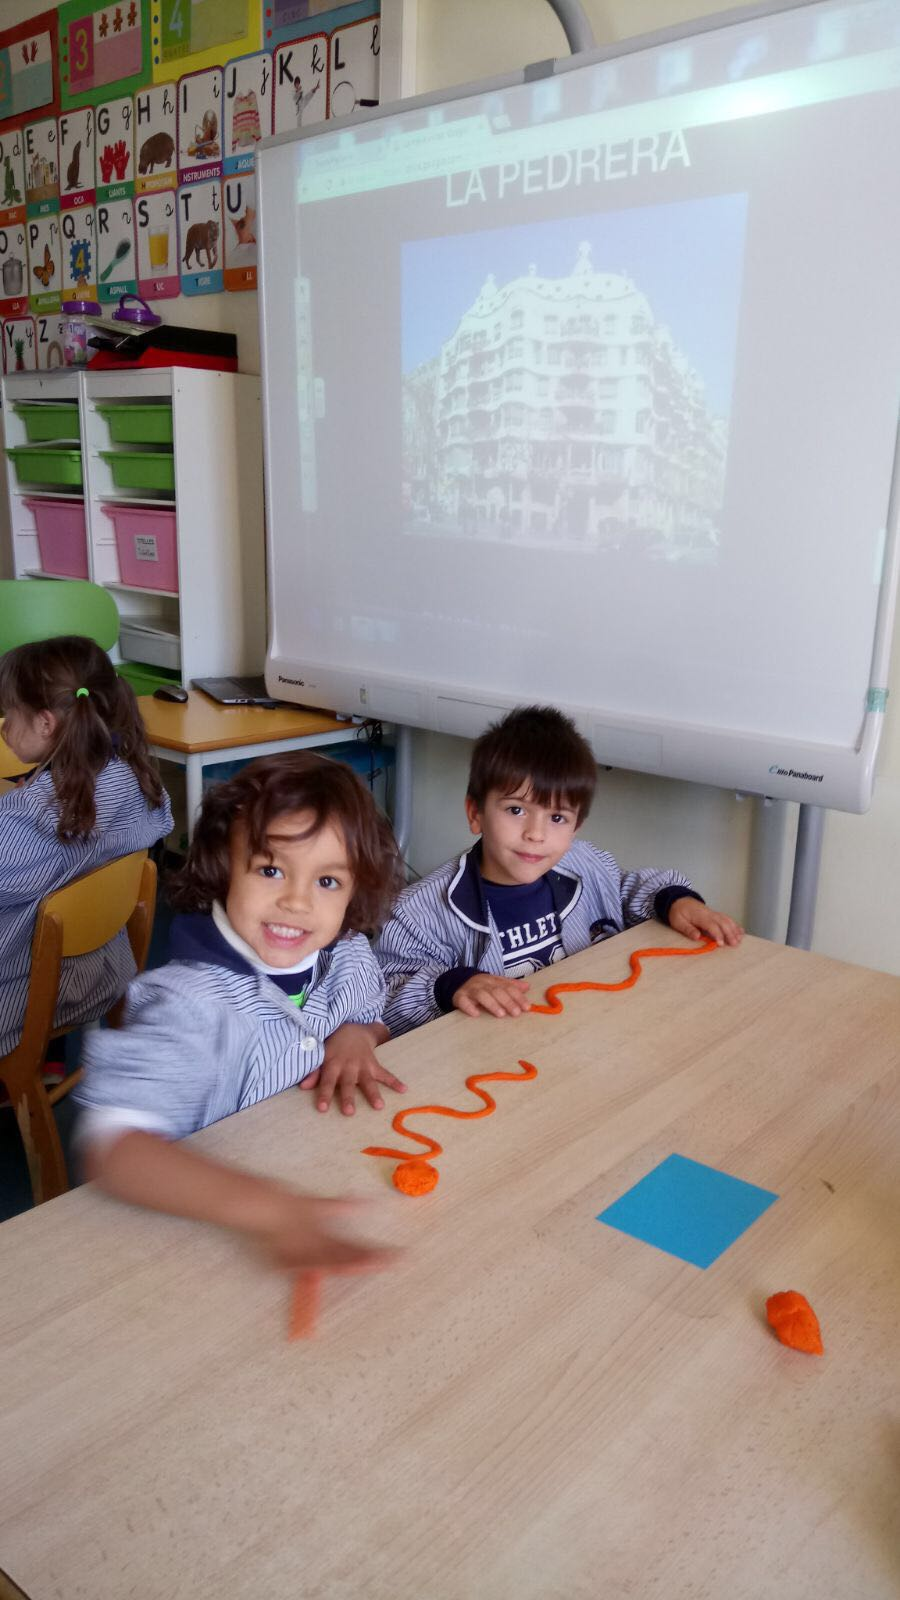 The Gaudí's Project!